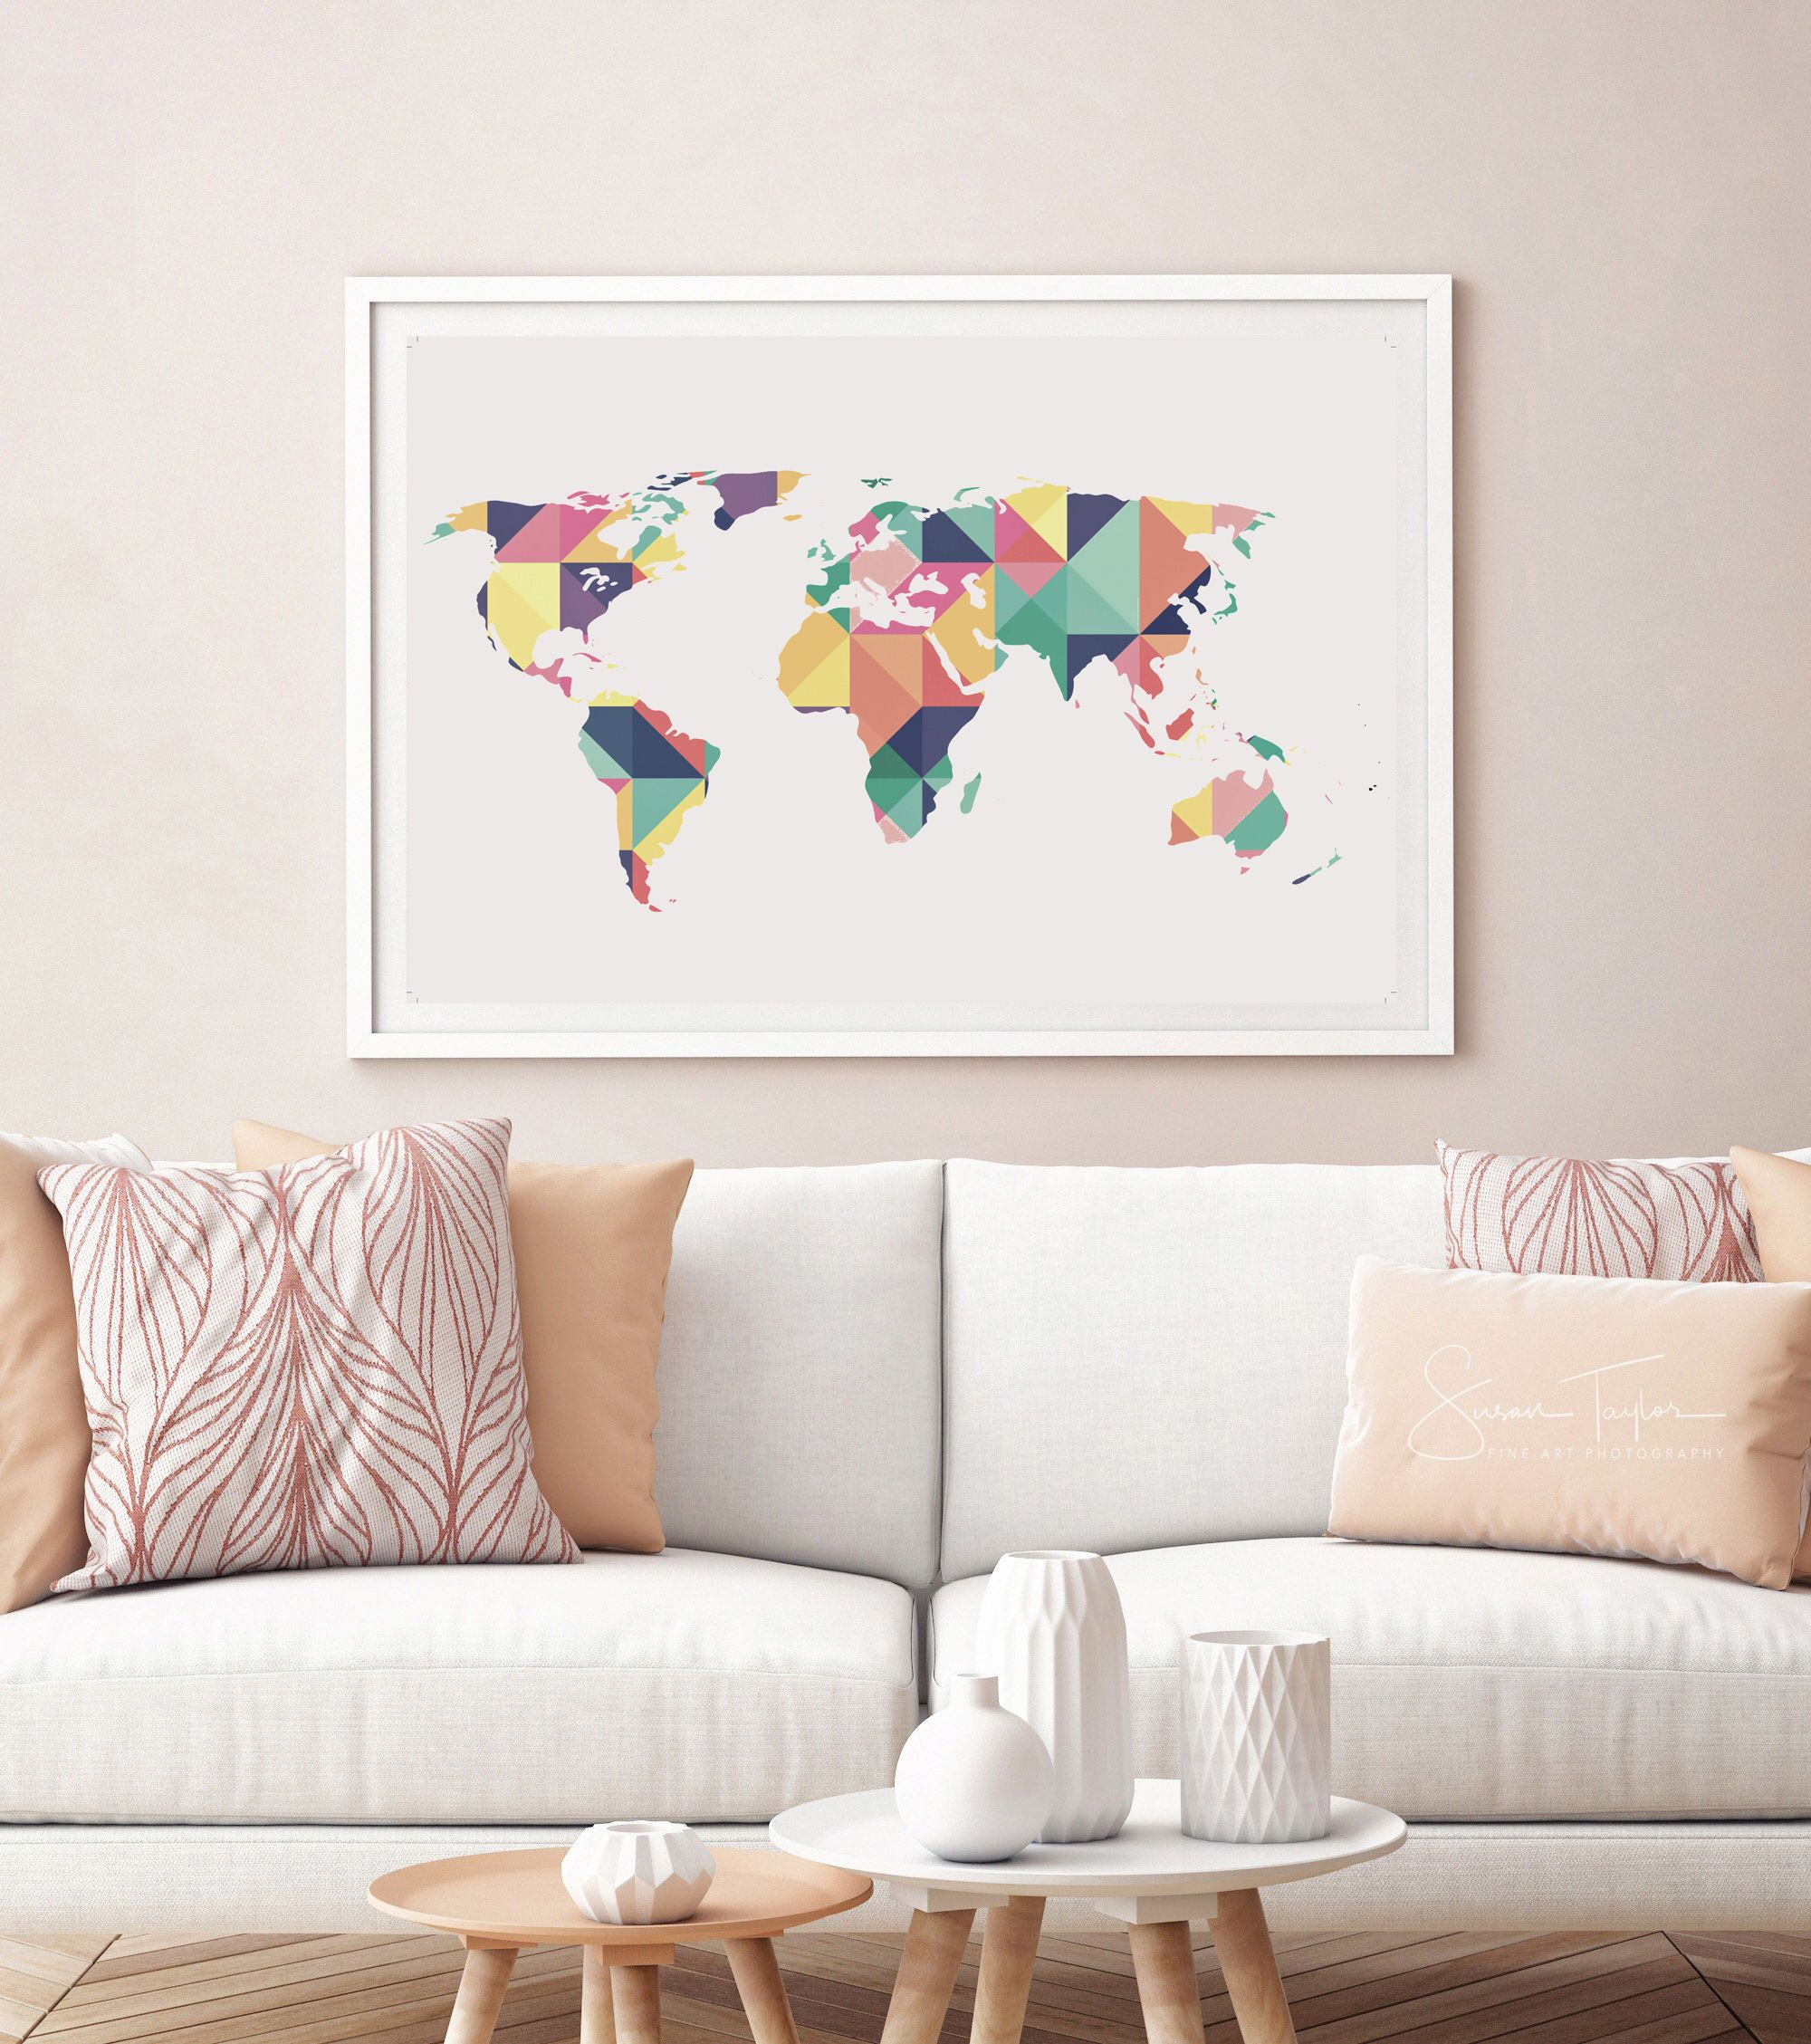 World map print world map wall art world map canvas world map world map print world map wall art world map canvas world map poster geometric print geometric art geometric world map pin board gumiabroncs Choice Image